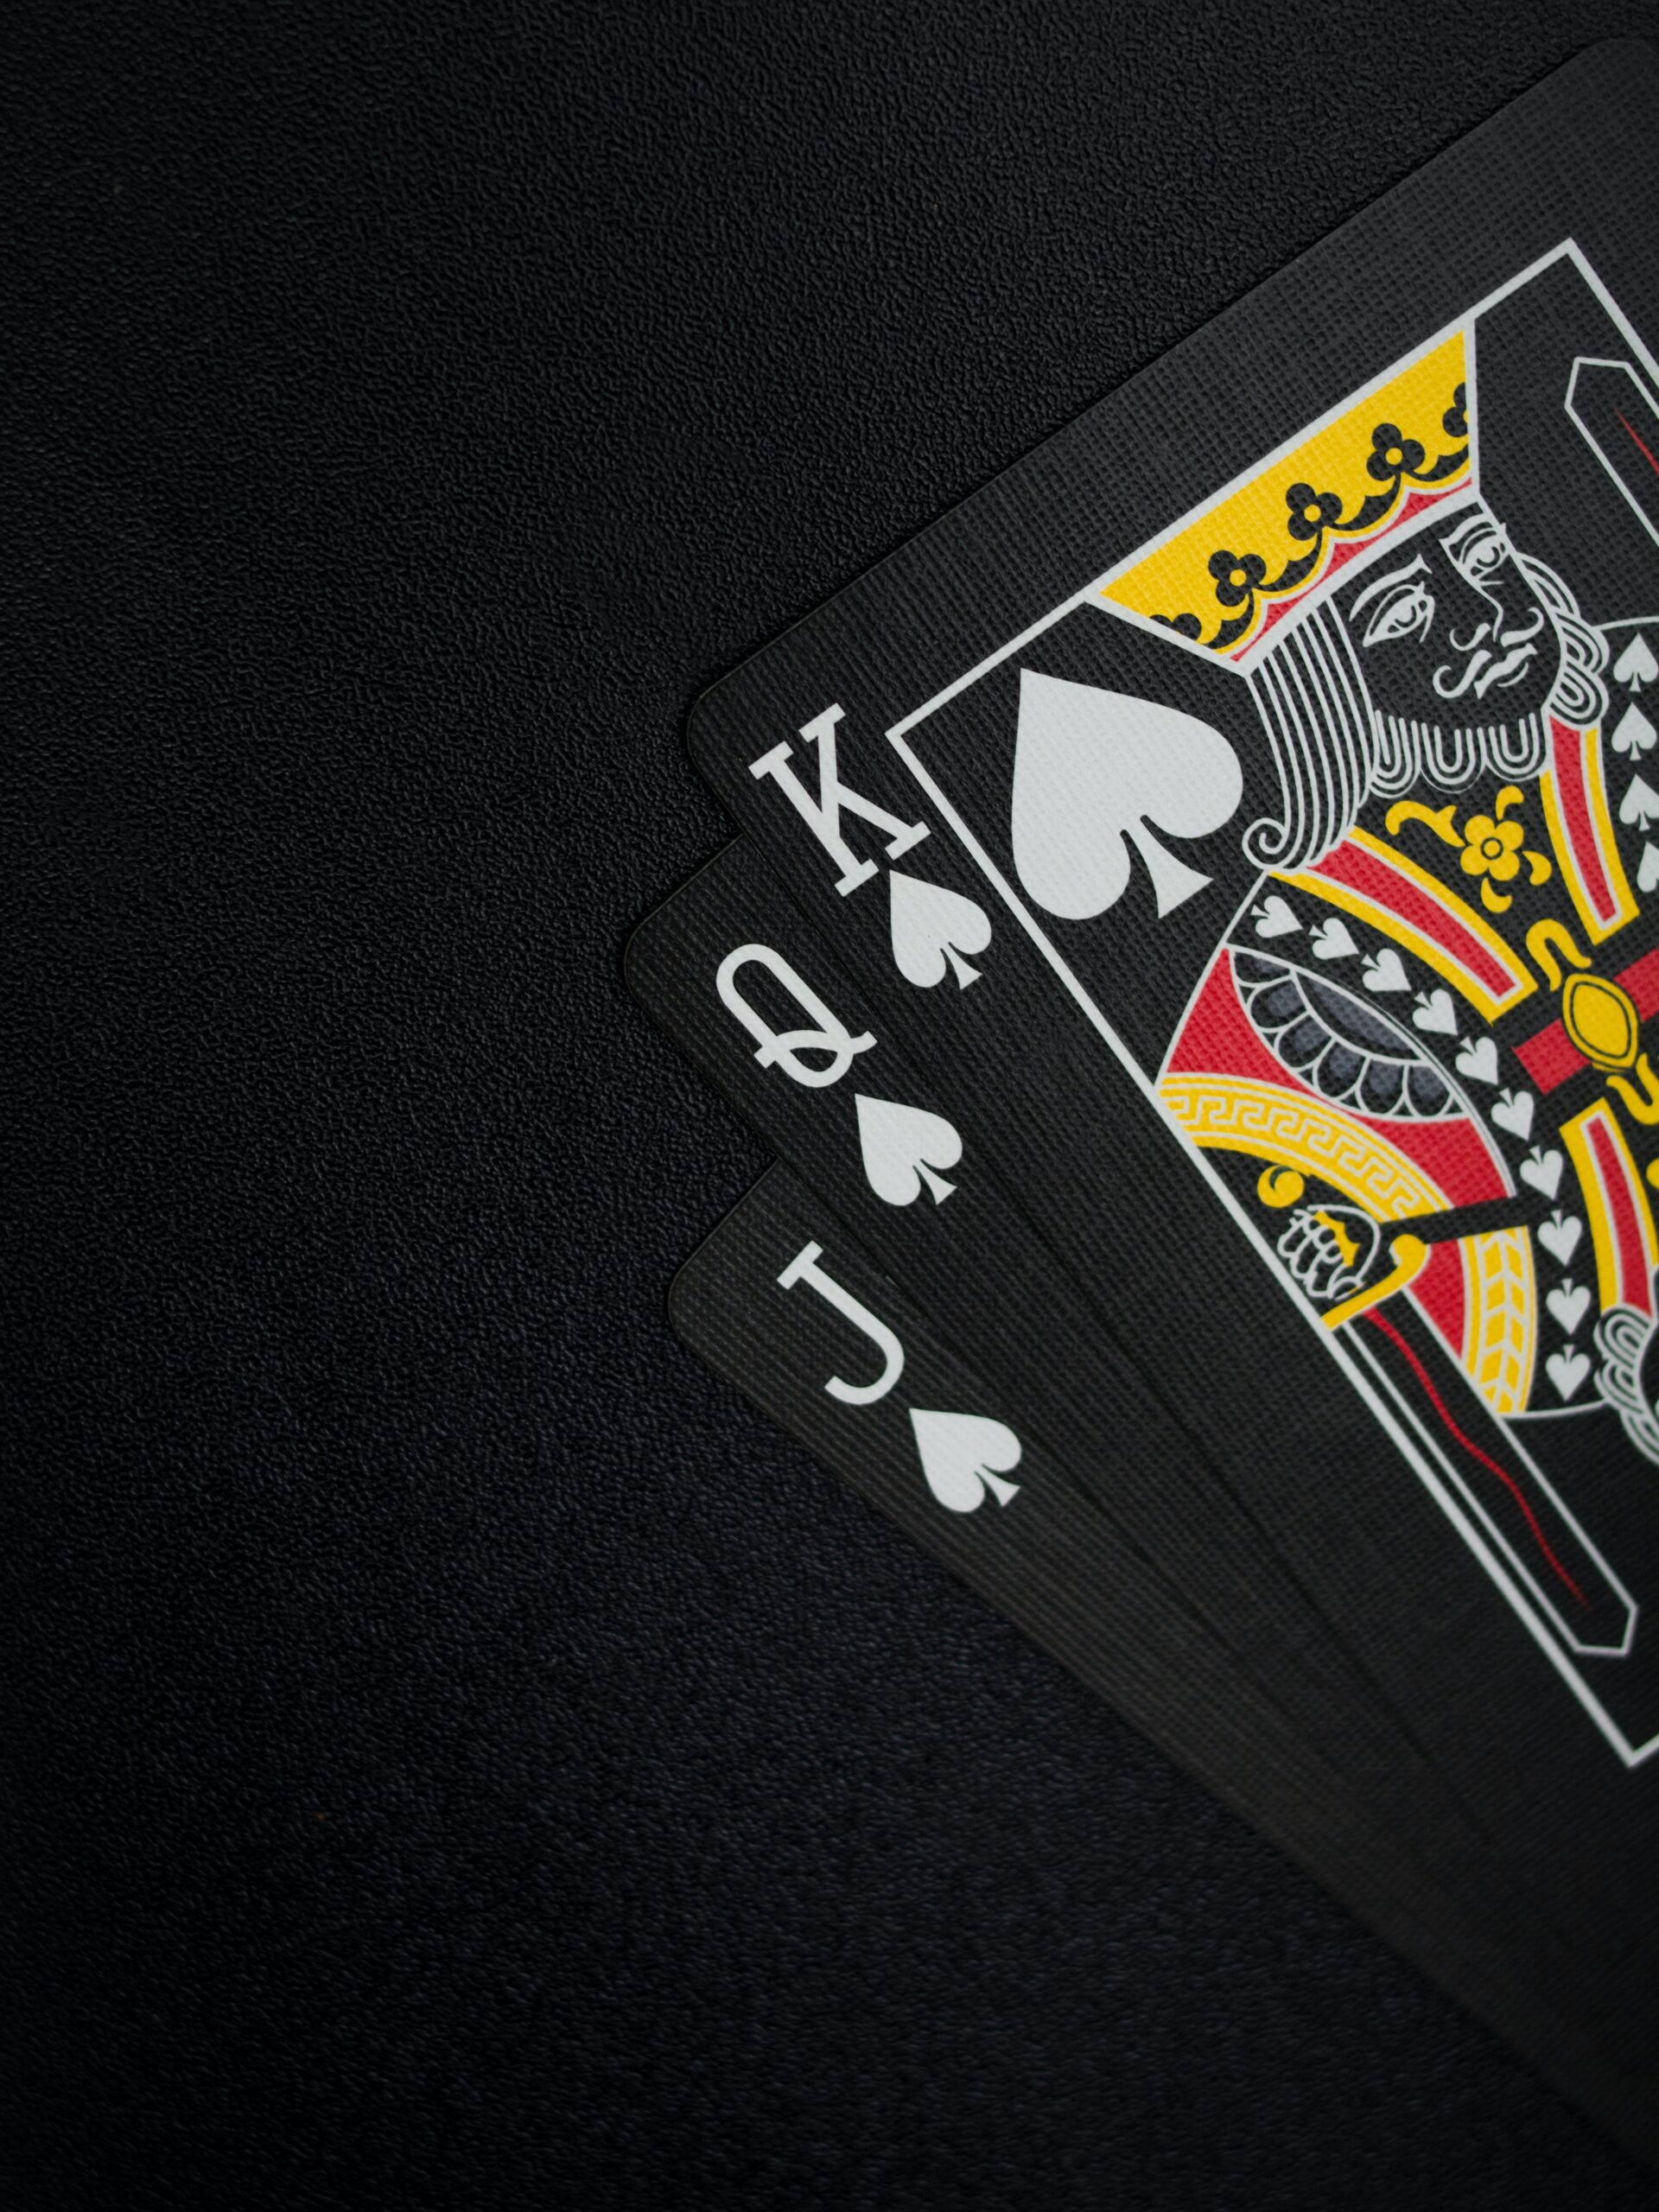 Canada's Rapid Growth in Online Casino Gaming 2